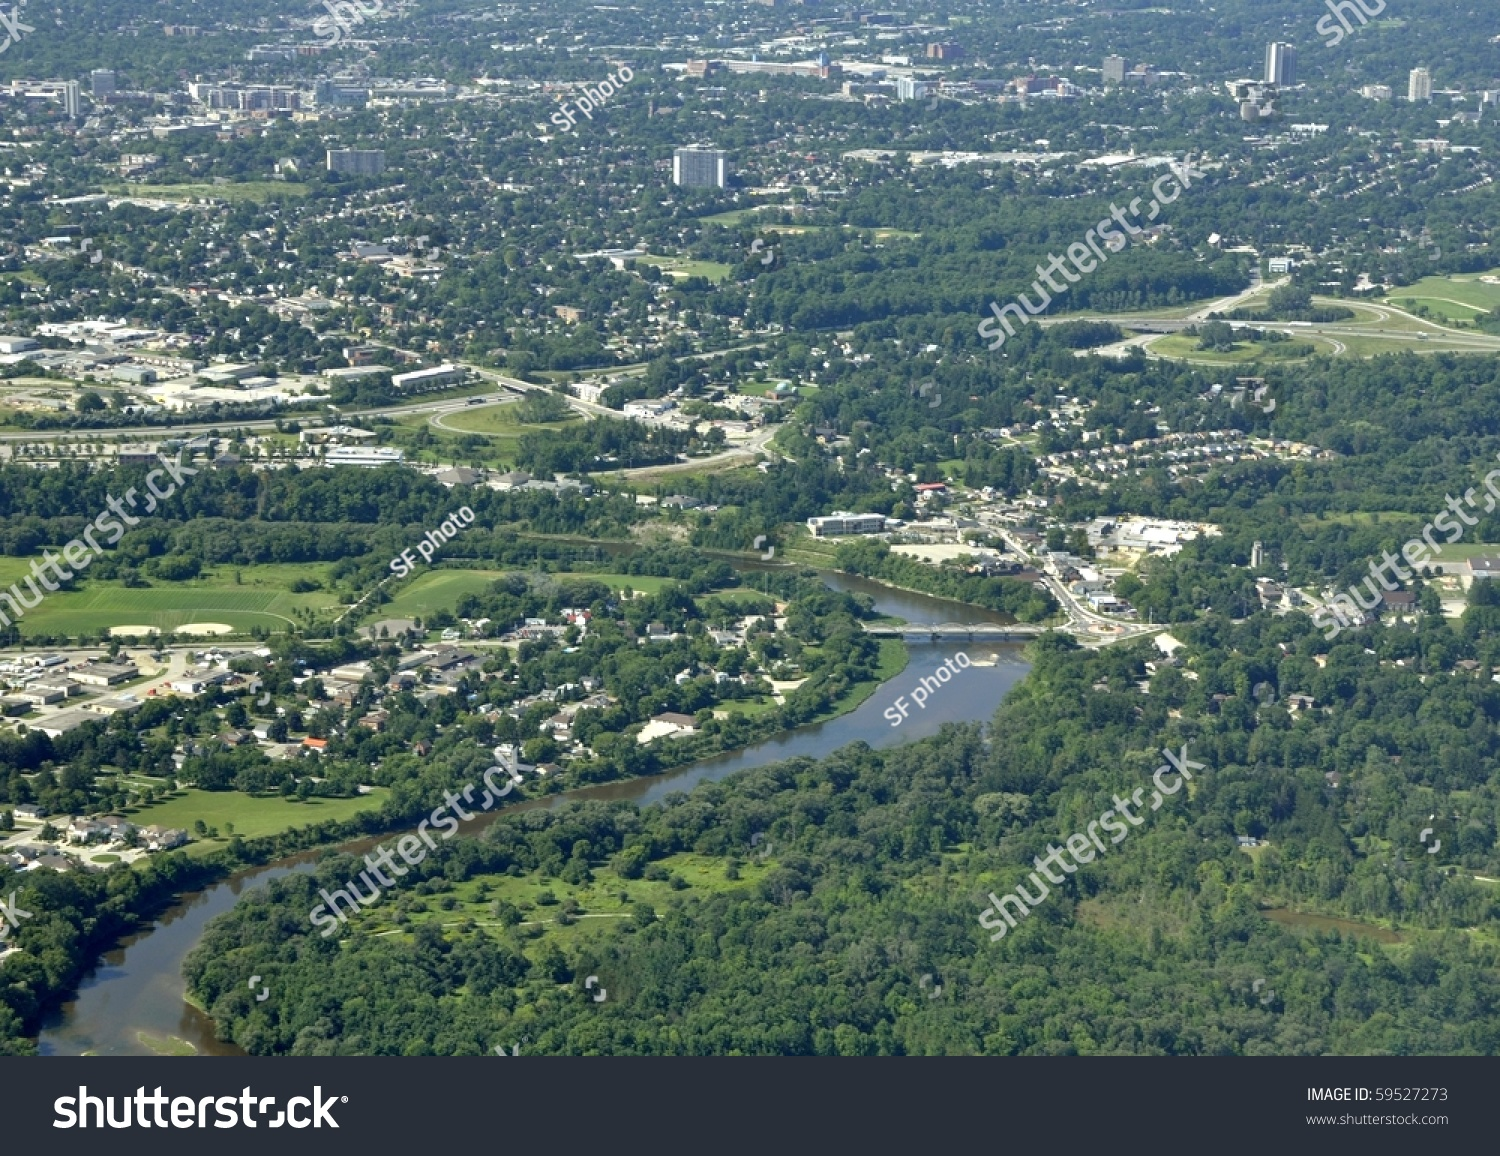 Kitchener (ON) Canada  city pictures gallery : Bridgeport Area Kitchener Waterloo Ontario Canada Stock Photo 59527273 ...